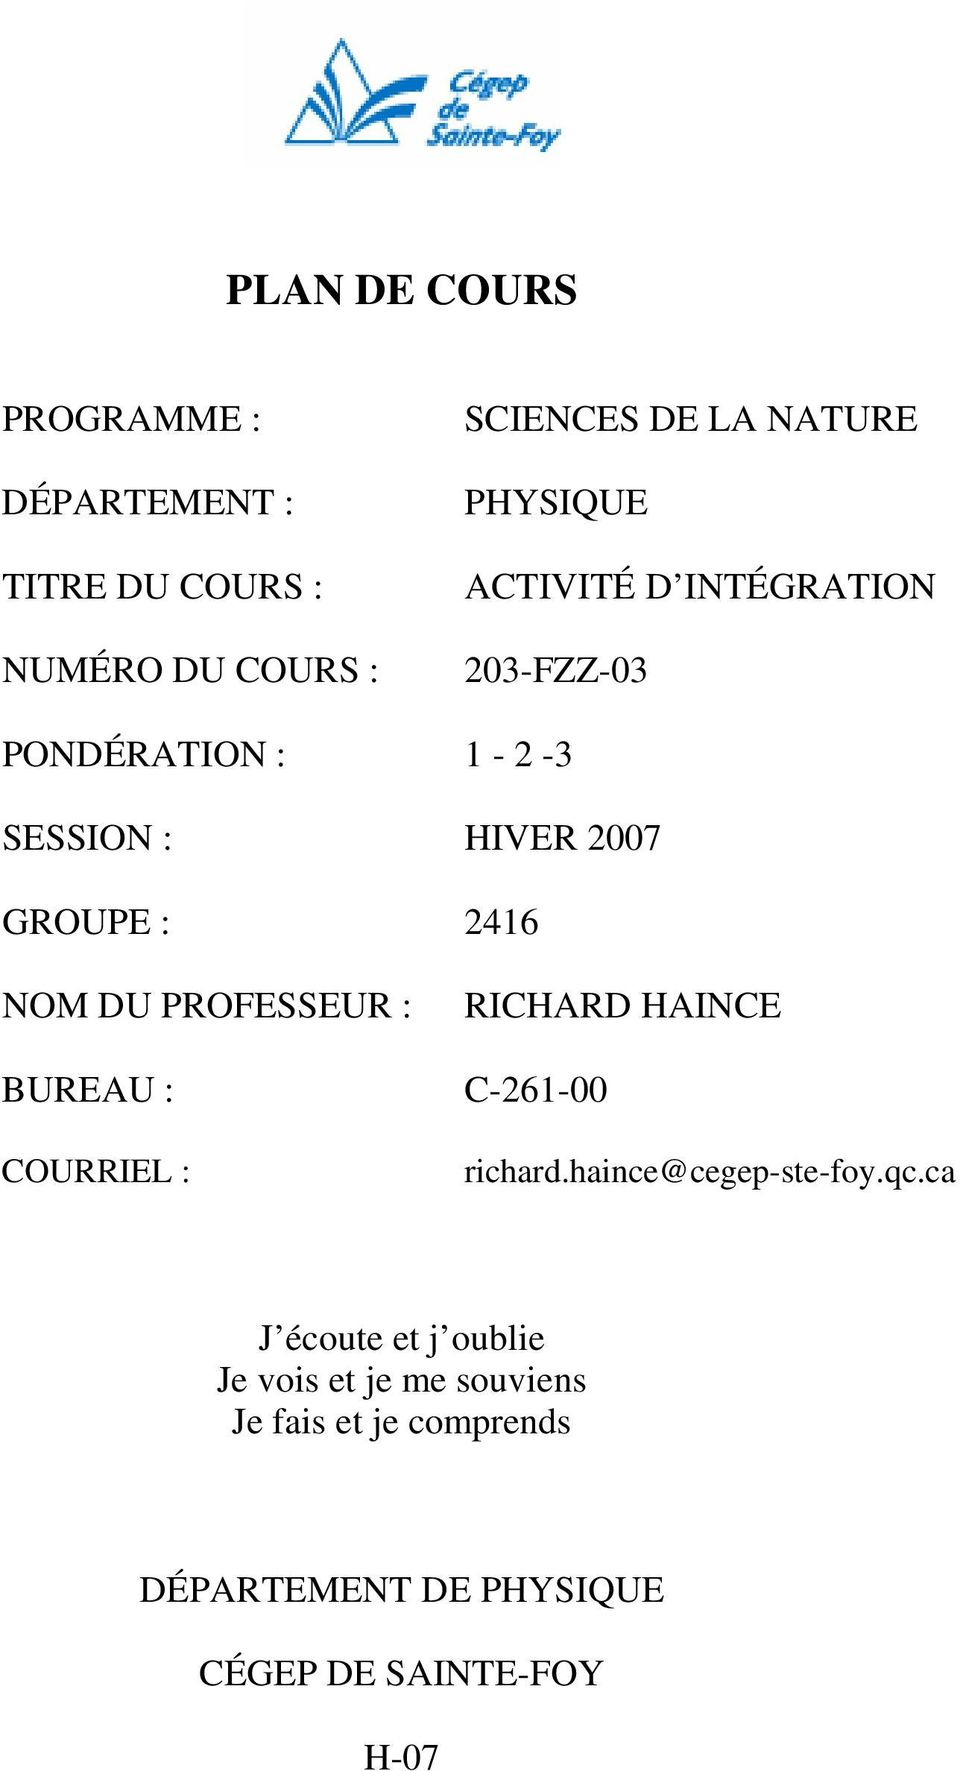 DU PROFESSEUR : BUREAU : COURRIEL : RICHARD HAINCE C-261-00 richard.haince@cegep-ste-foy.qc.